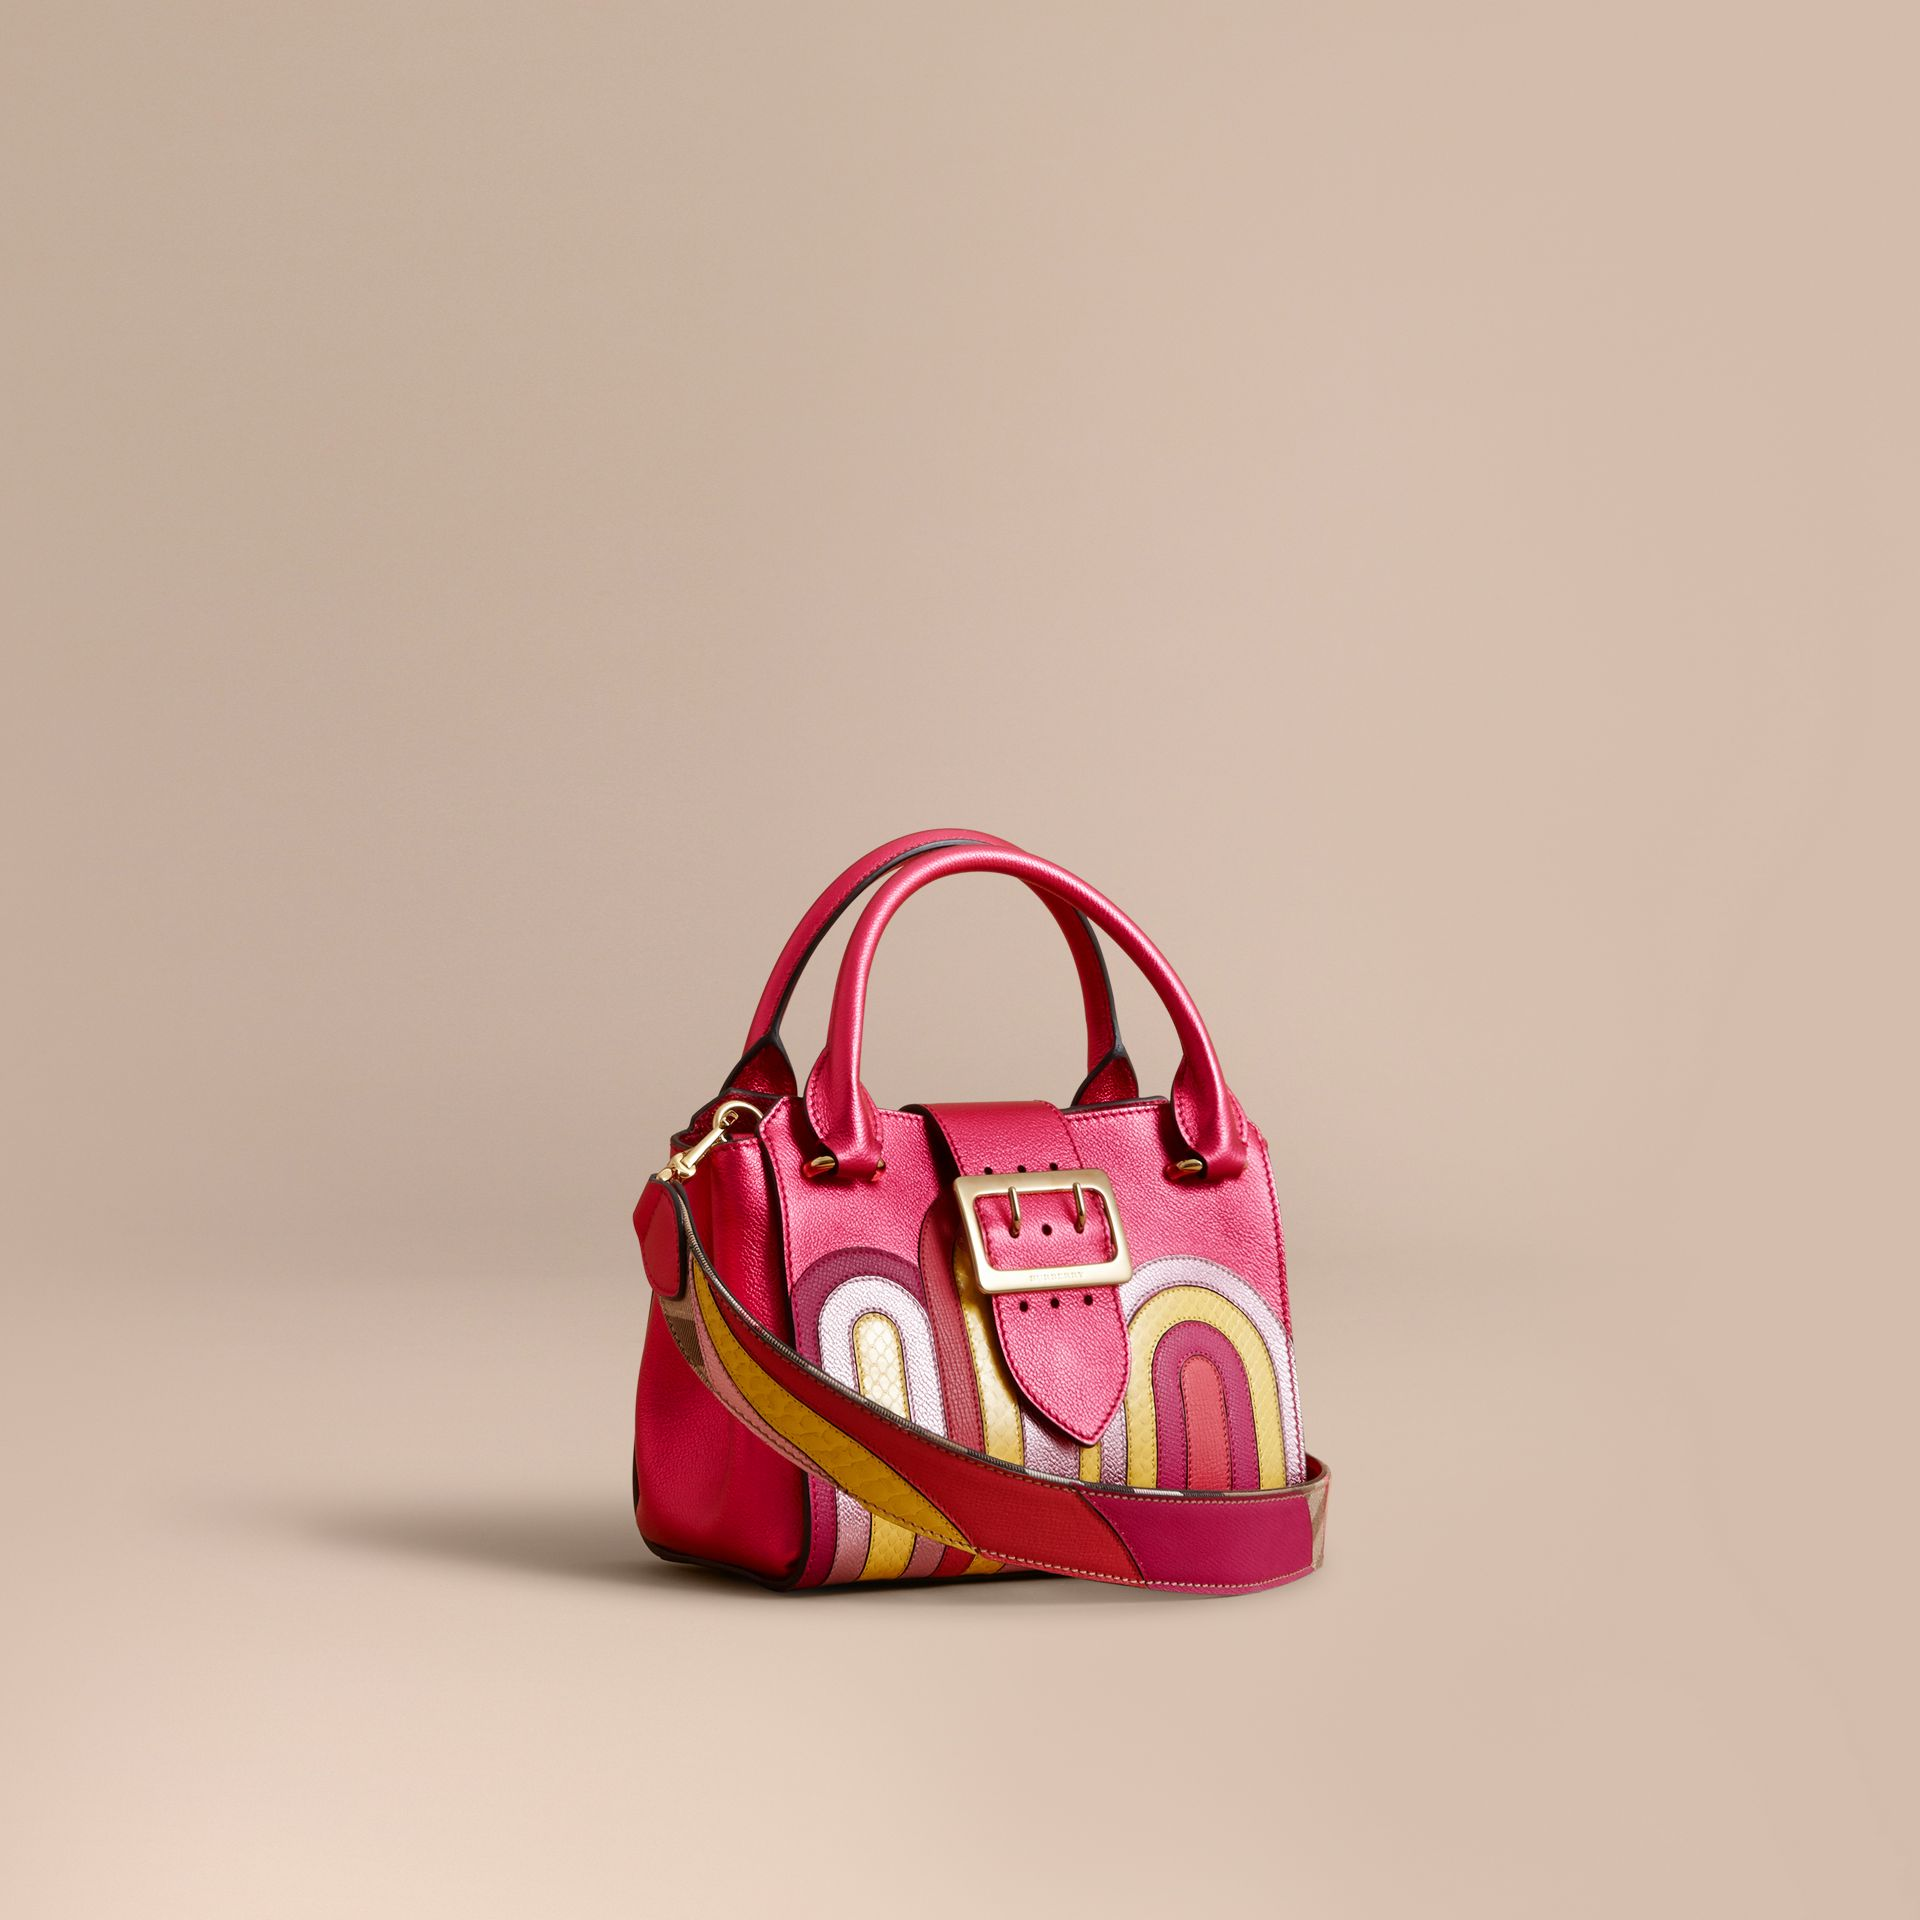 The Small Buckle Tote in Metallic Leather with Snakeskin Appliqué - gallery image 1